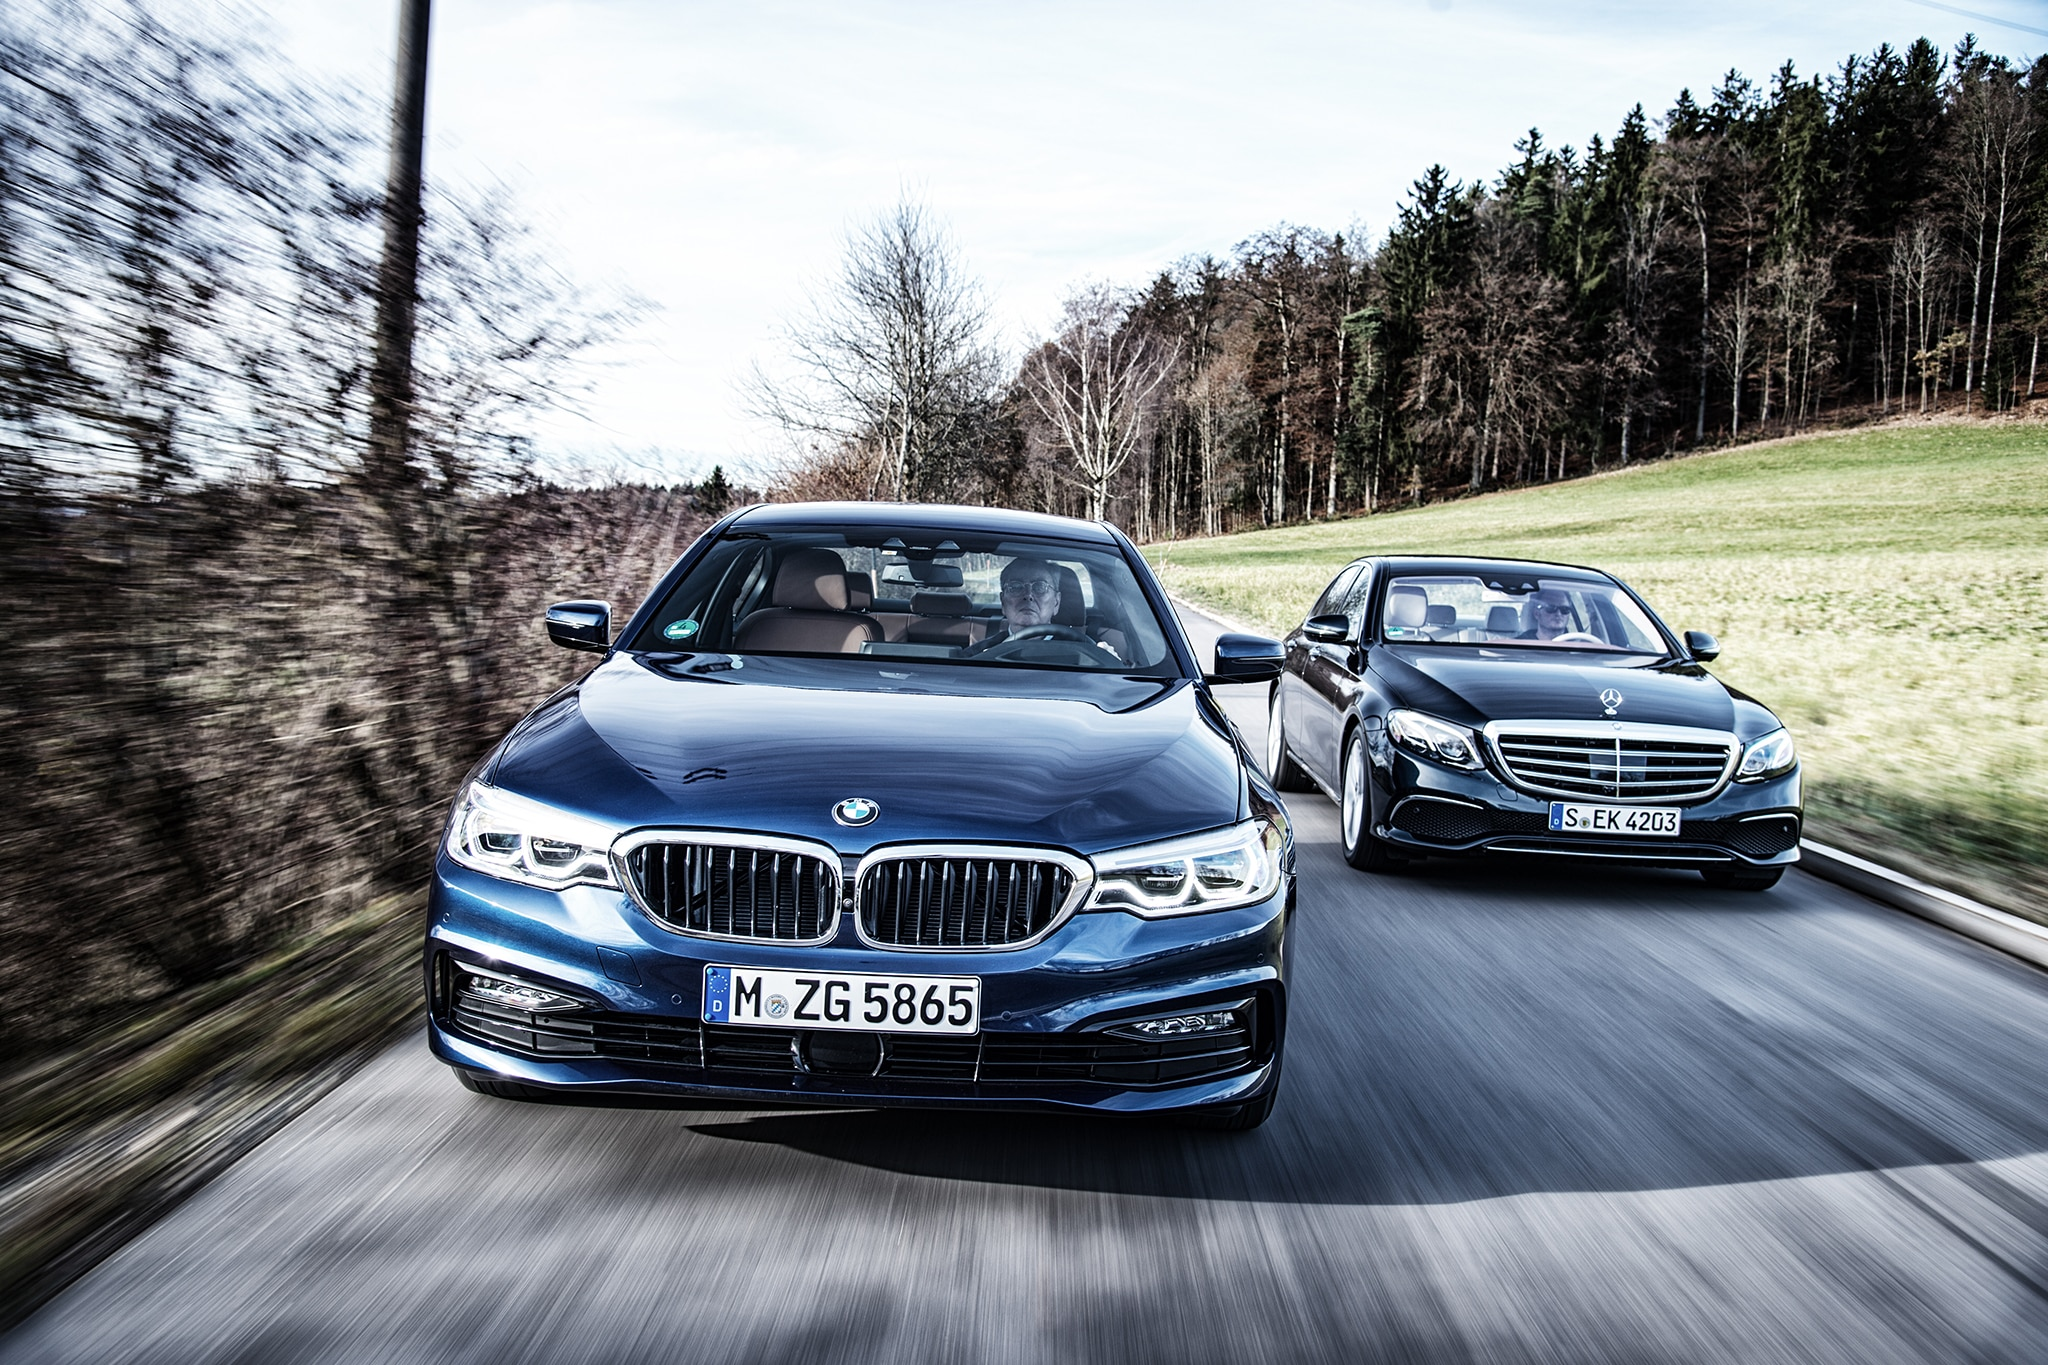 2017 Bmw 530d Xdrive Vs 2017 Mercedes Benz E350d